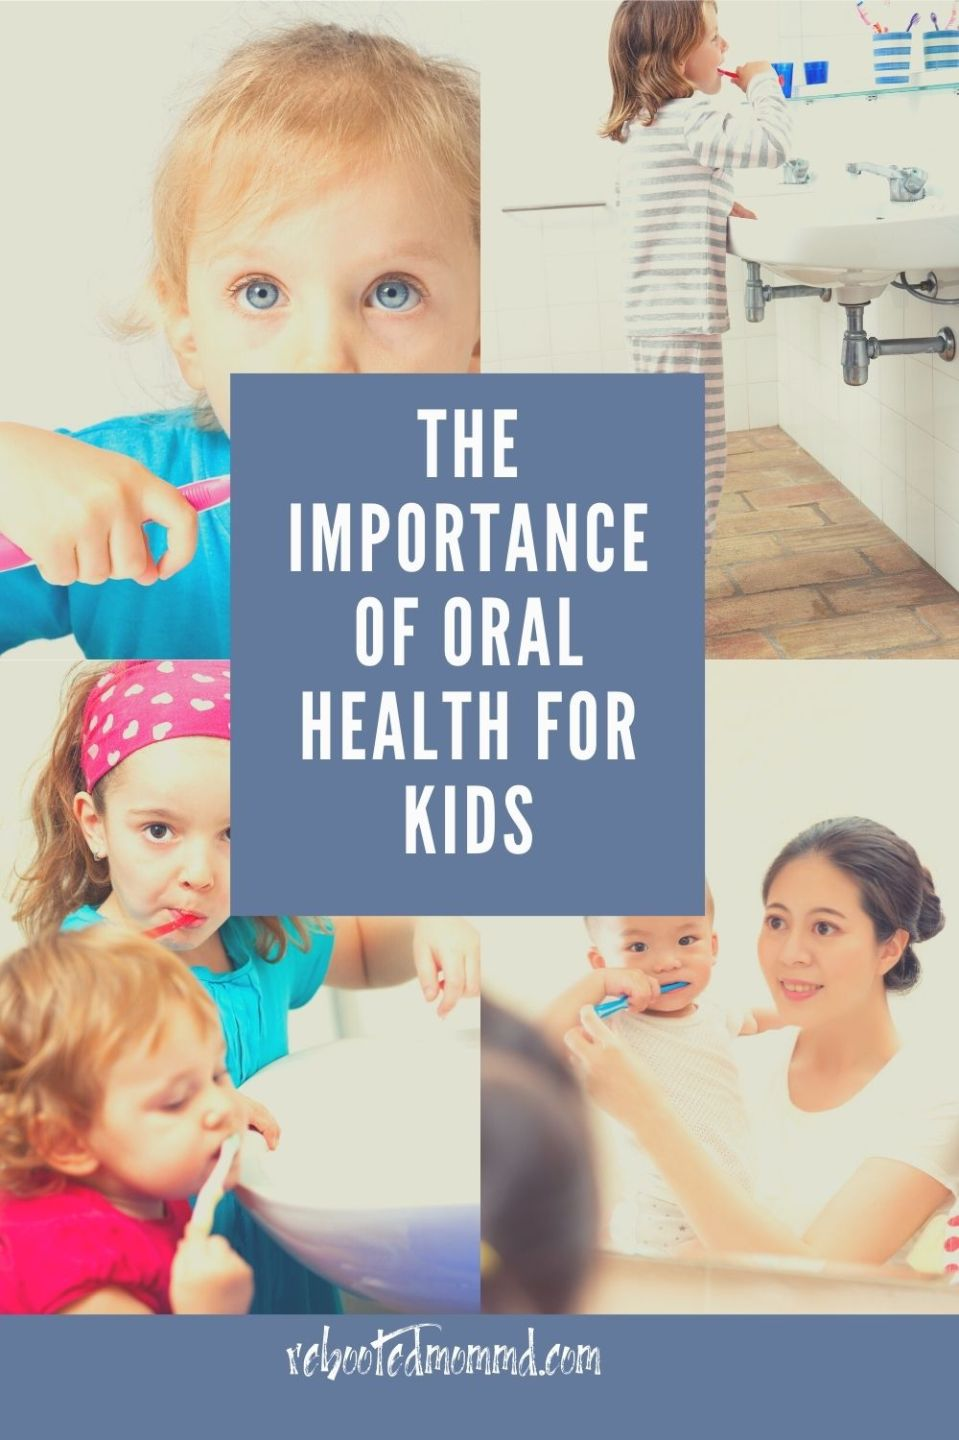 The Importance of Oral Health for Kids